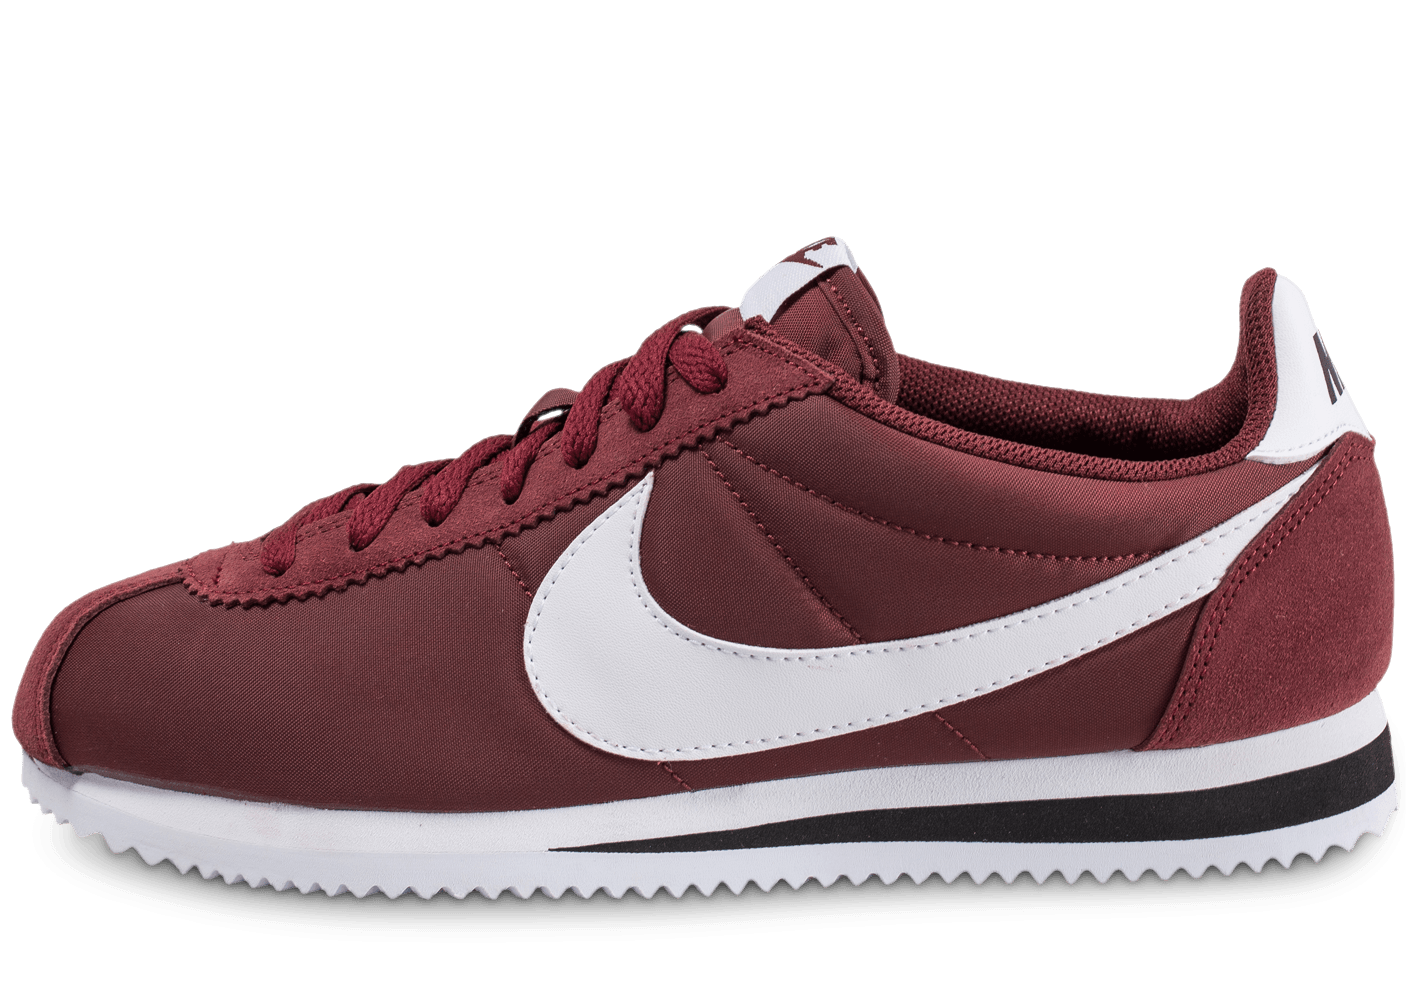 cheap for discount lowest price best value nike cortez femme bordeaux,achat / vente chaussures baskets nike ...